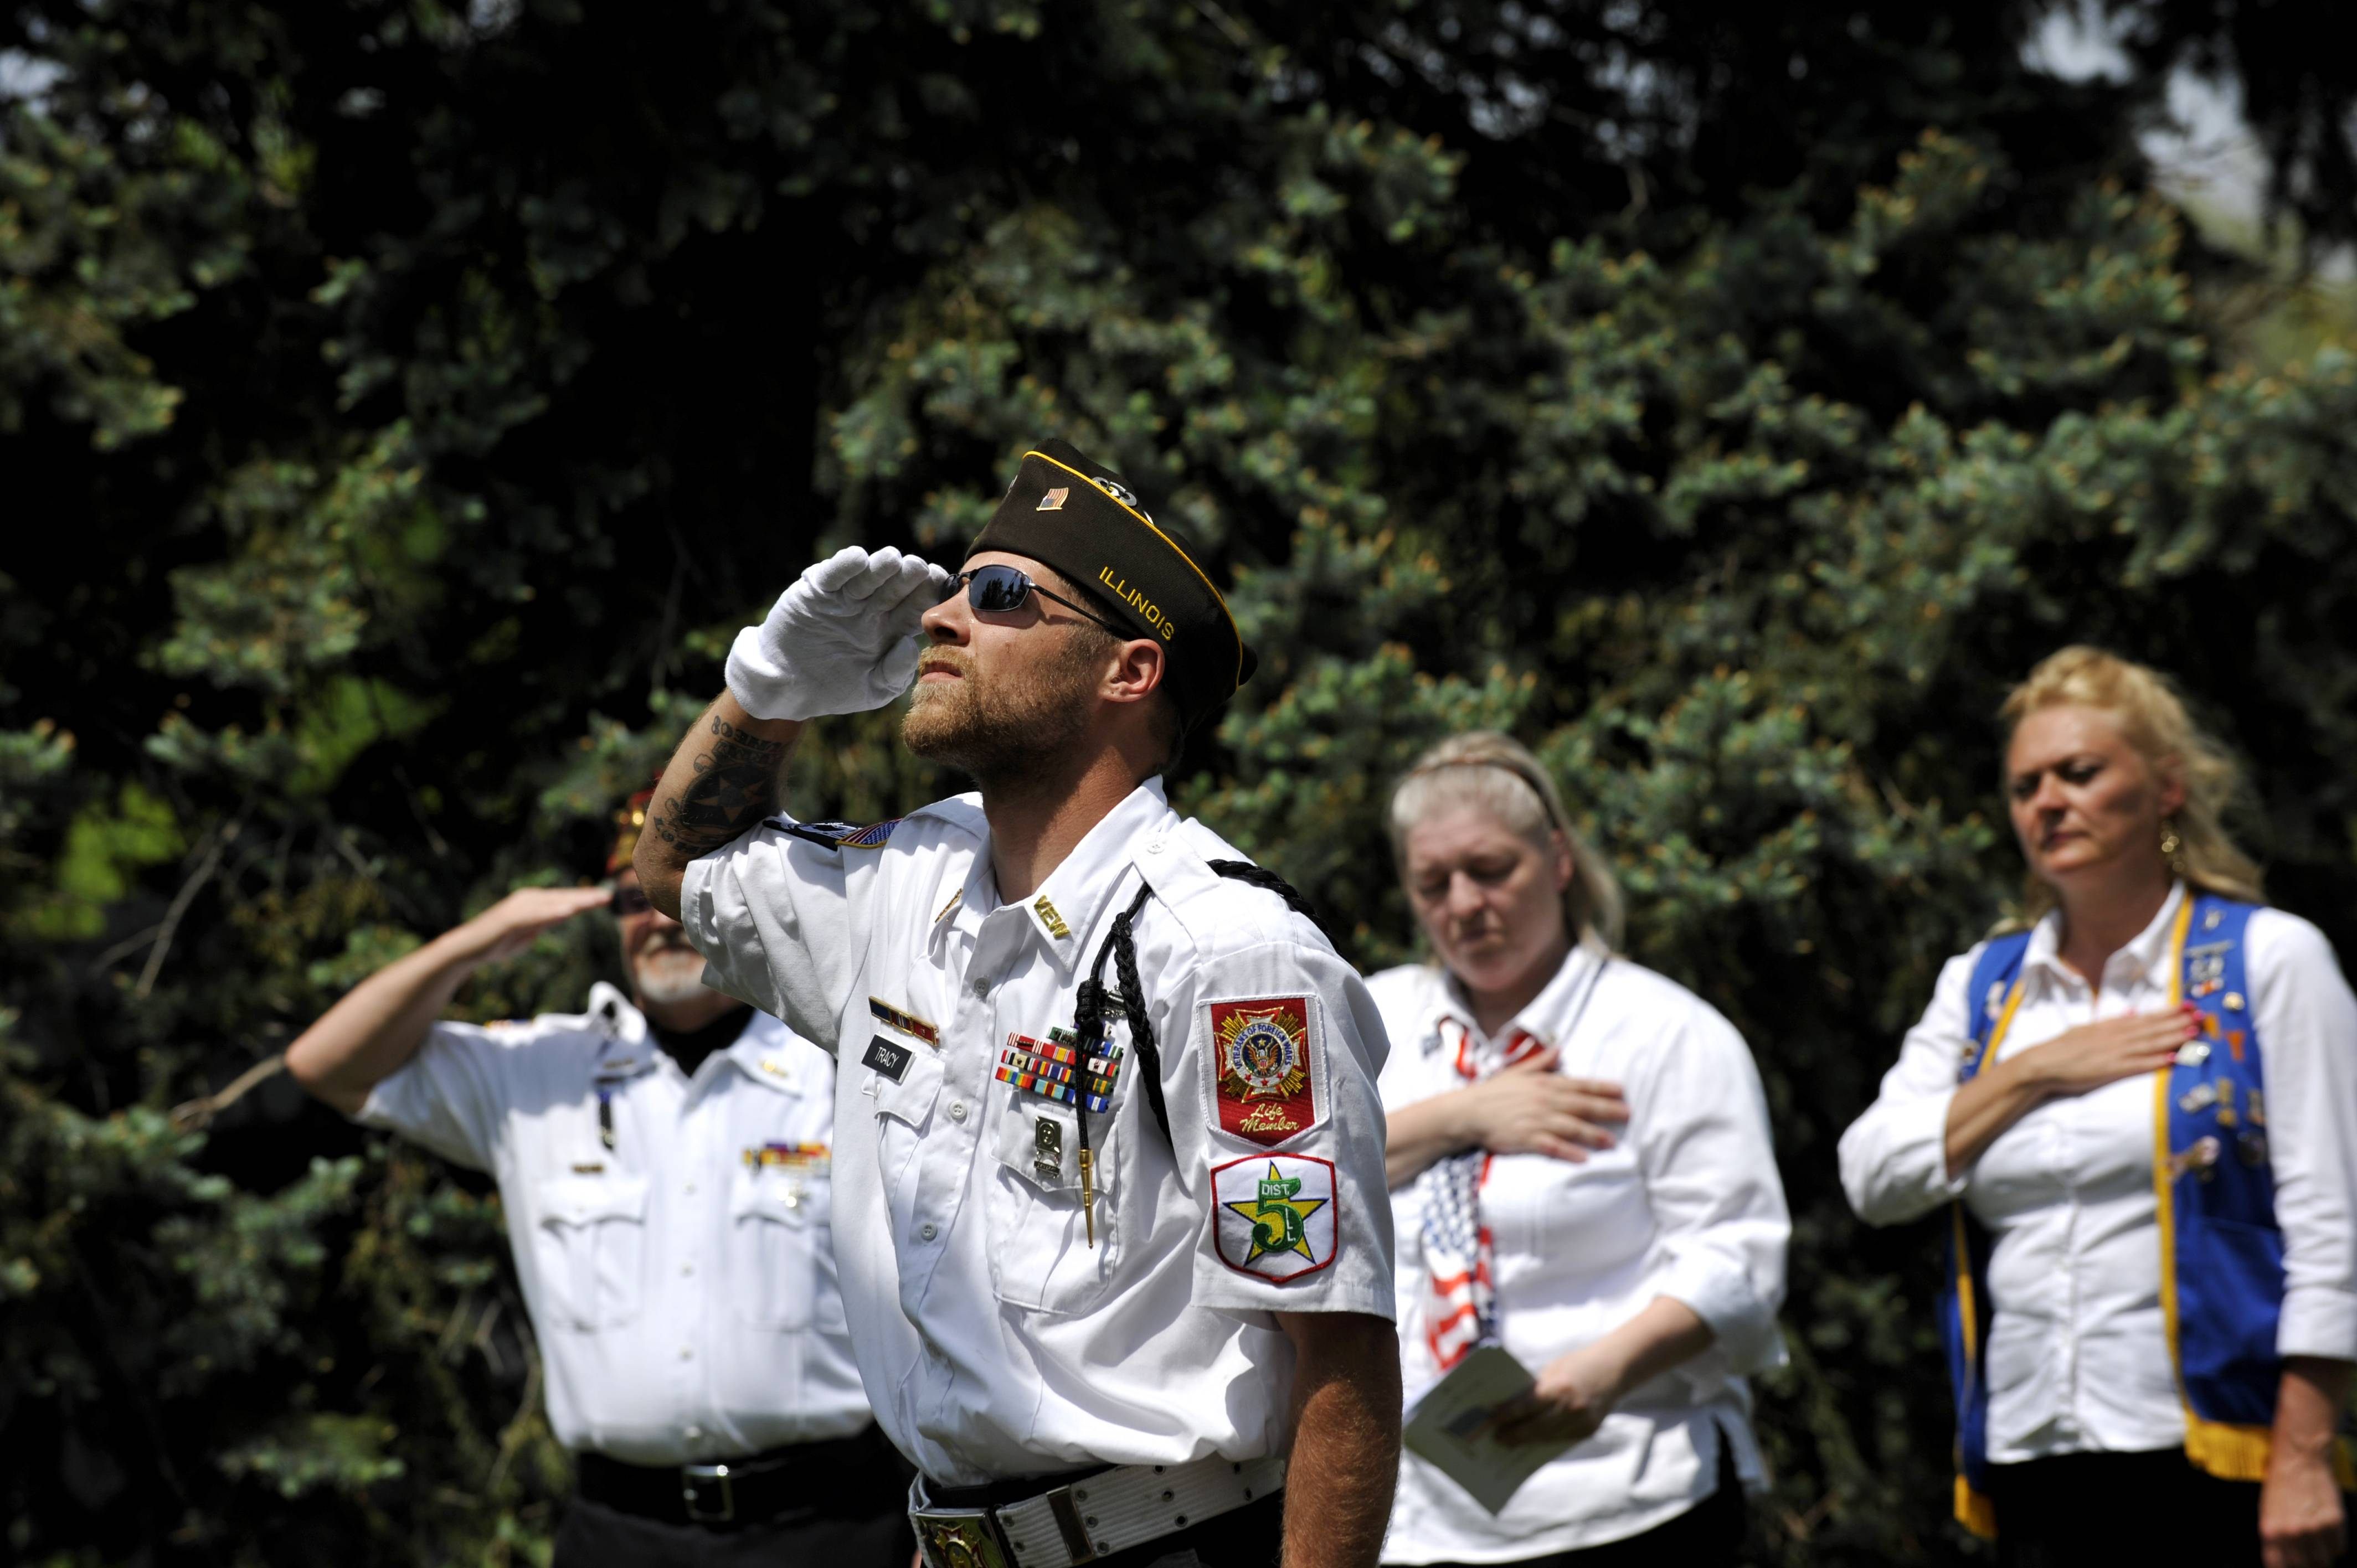 Adam Tracy of West Dundee gives salute during the Memorial Day Service at River Valley Memorial Gardens in West Dundee on Monday, May 26. Patrick Green of Carpentersville, Jessica Gospodarek of Carpentersville, and Amy Lessing of Elgin are pictured in the background (left to right).